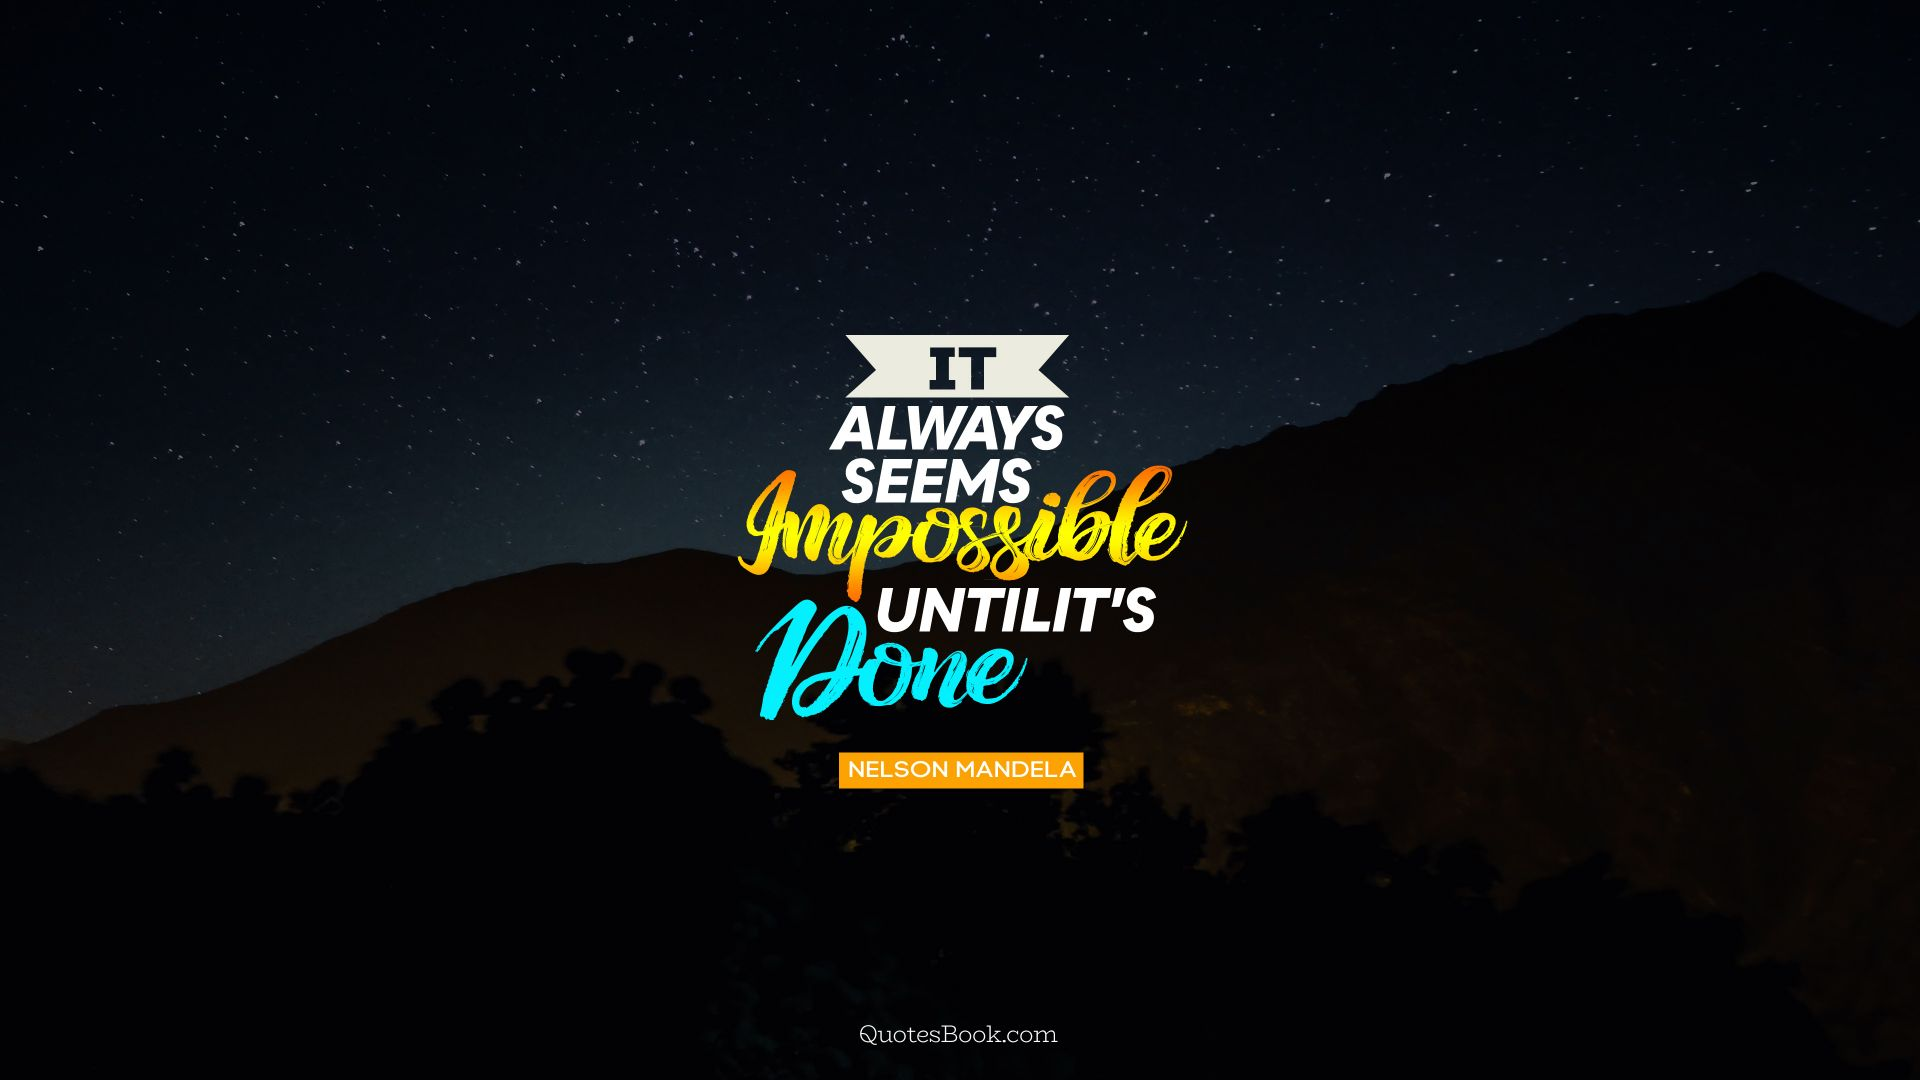 It Always Seems Impossible Until Its Done Nelson Mandela Quote